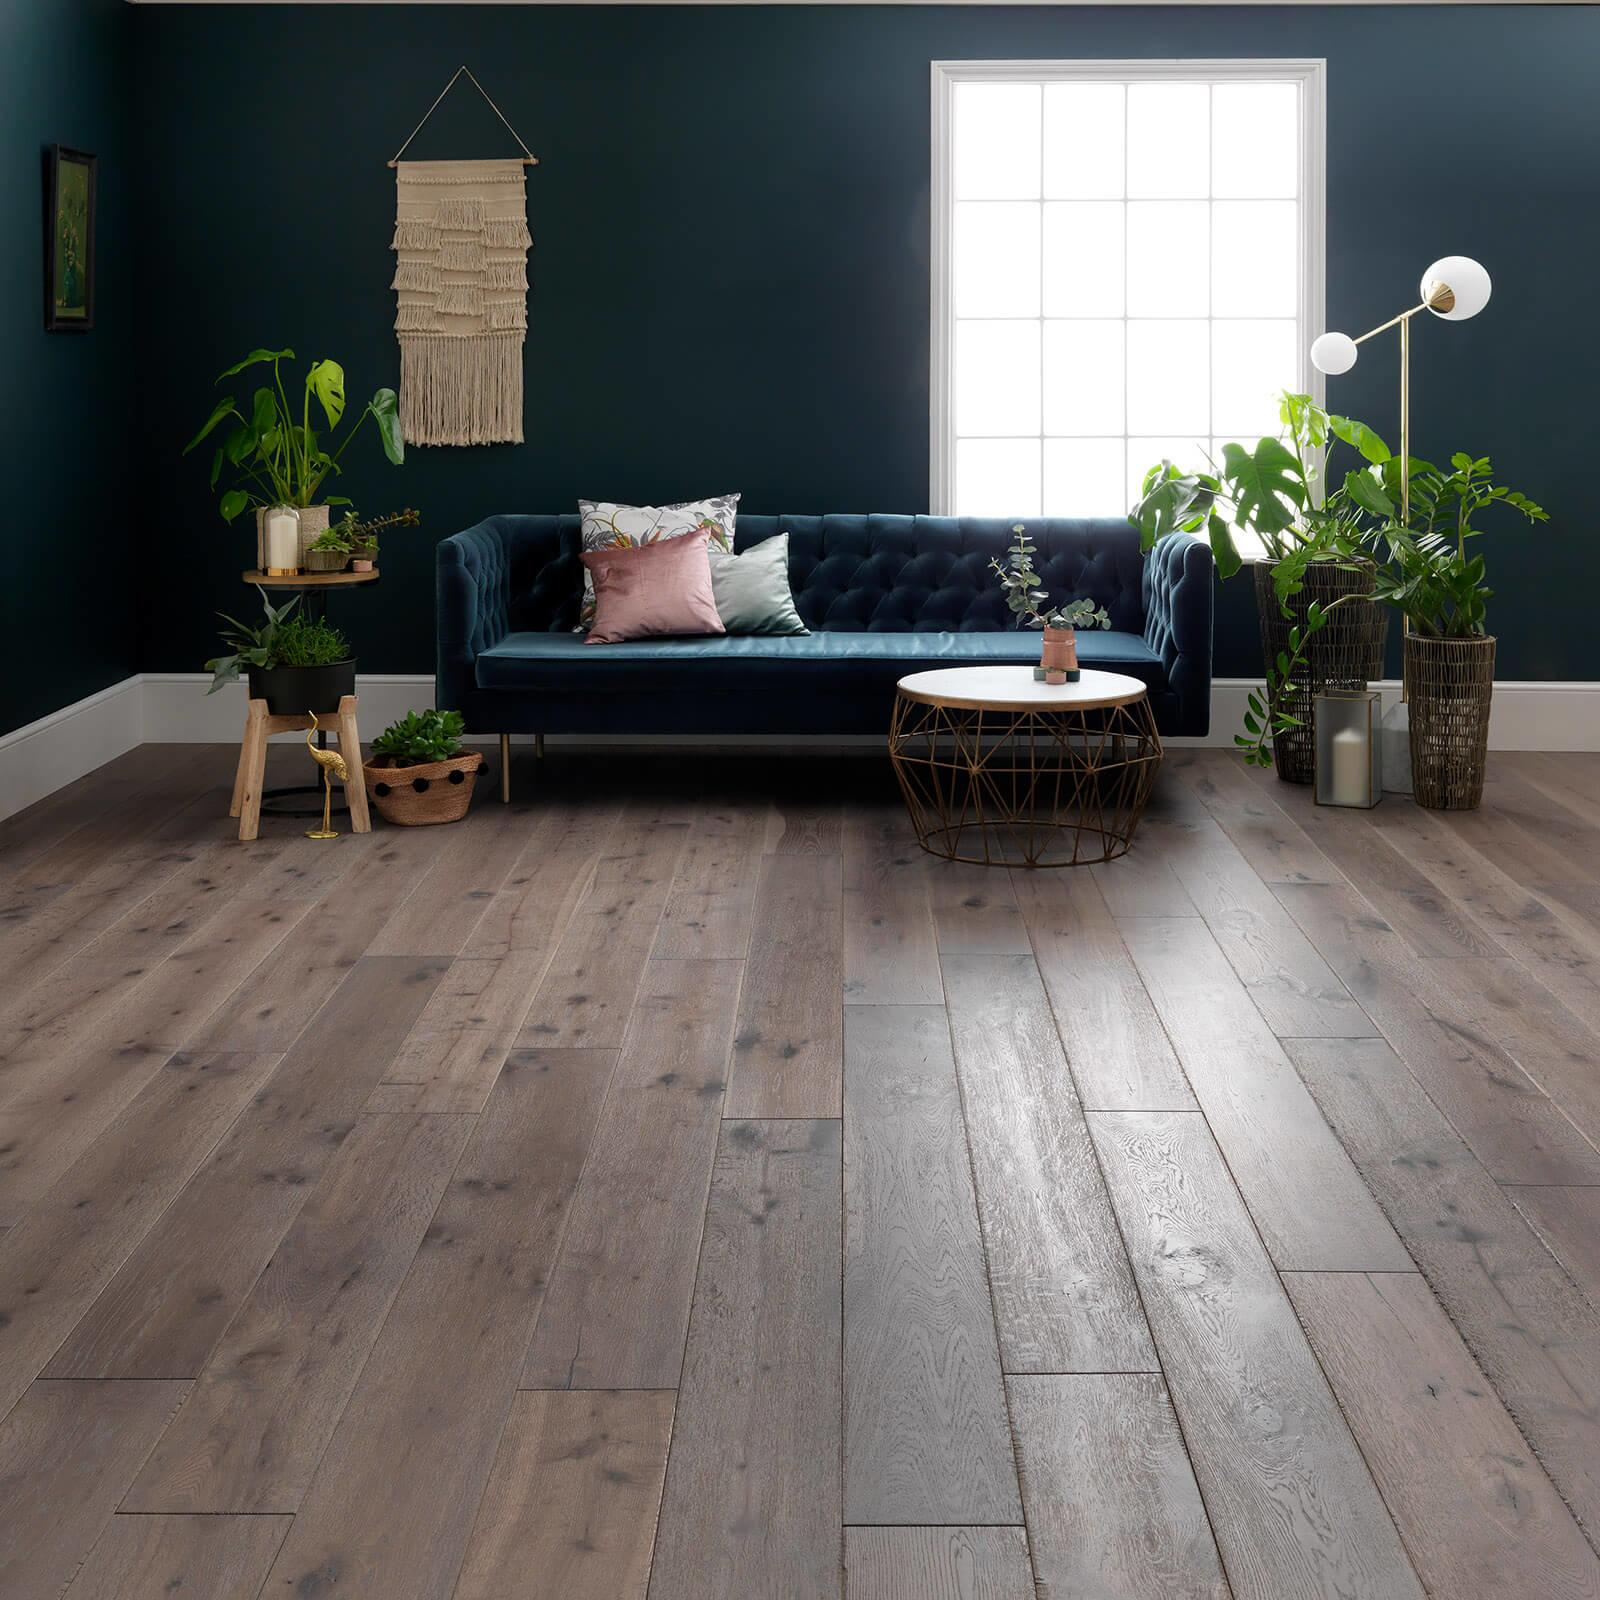 Woodpecker Berkeley Calico Oak Oiled 38-BCC-001 Engineered Wood Flooring